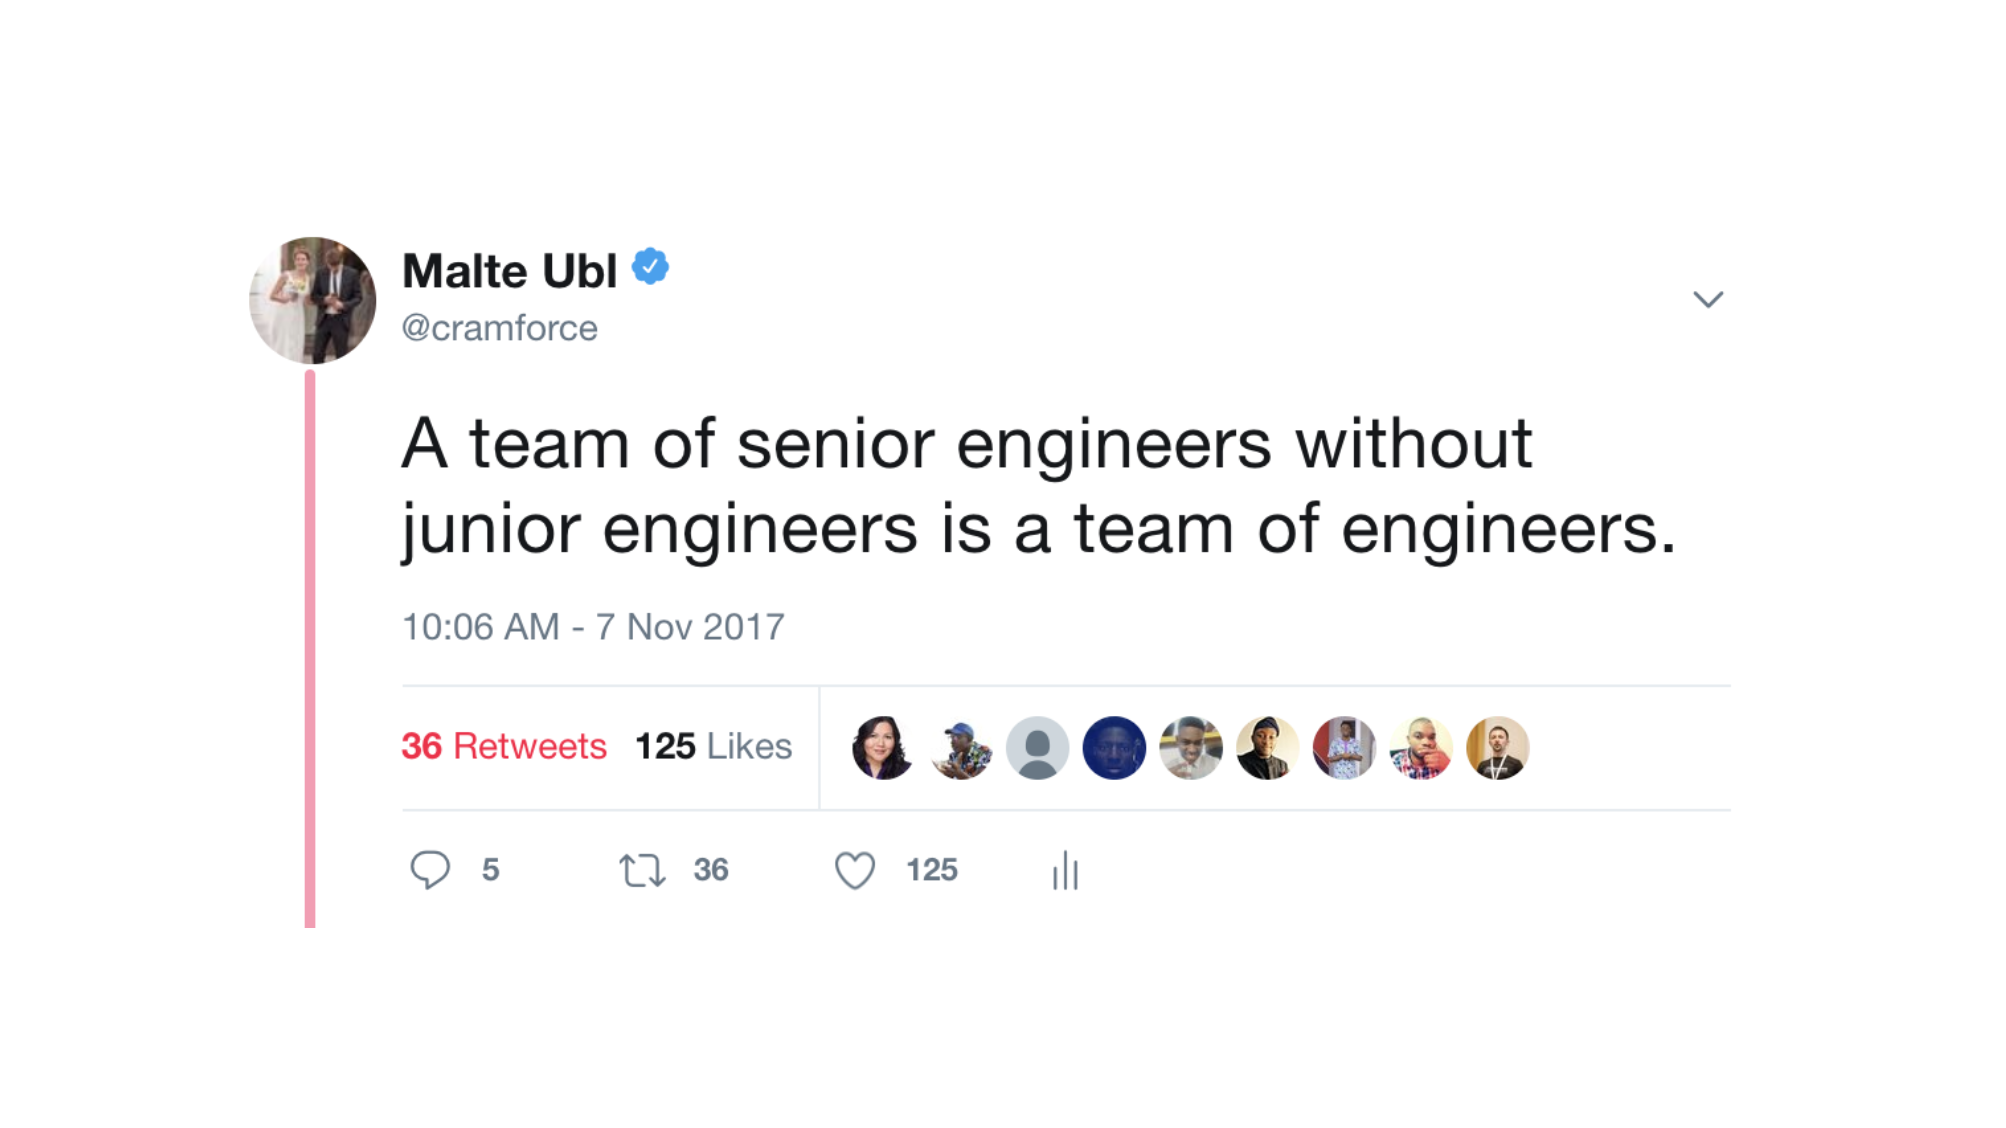 Tweet saying: A team of senior engineers without junior engineers is a team of engineers.